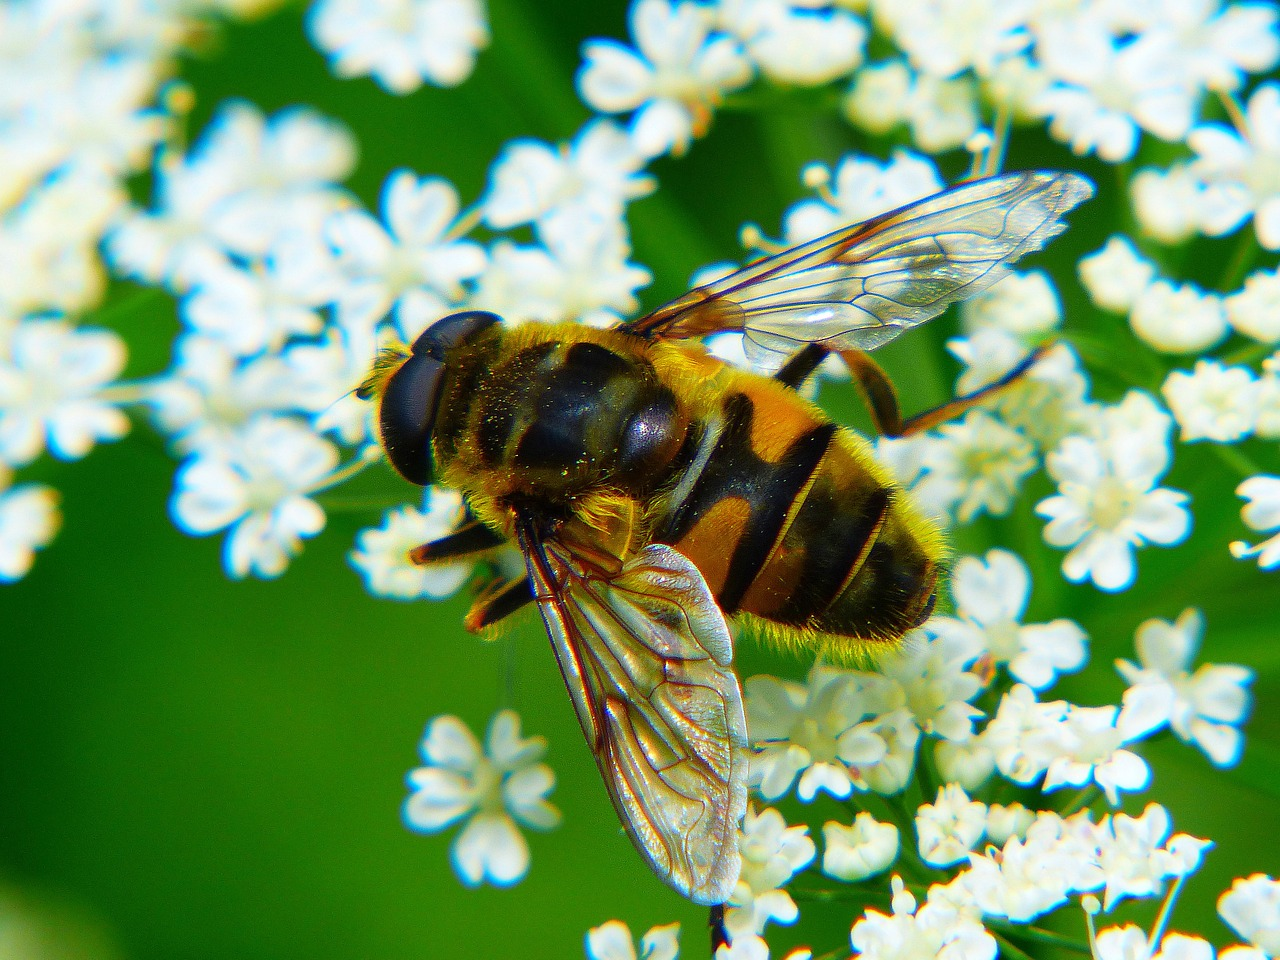 Tips For Planting A Bee Garden With Your Kids: Help These Insects As Your Children Learn